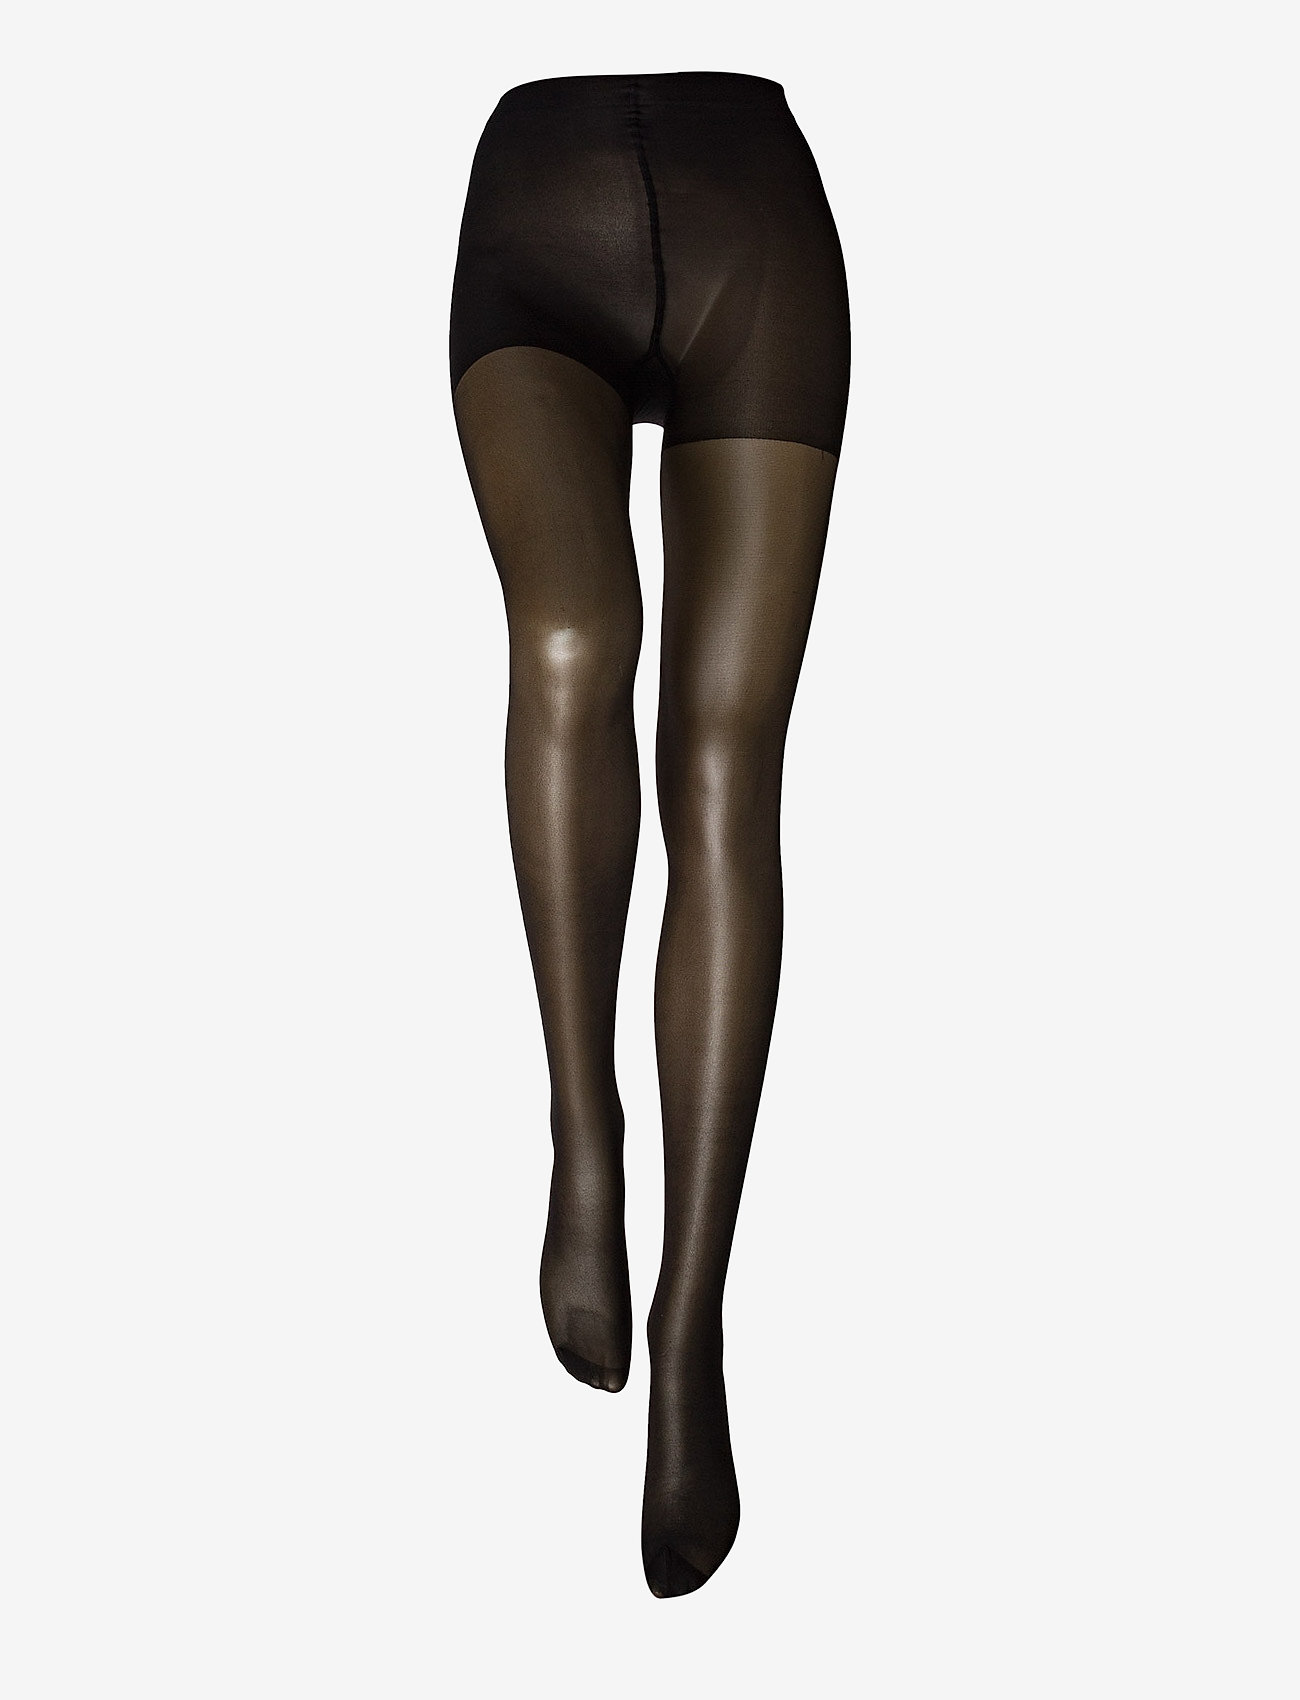 Vogue - Ladies den pantyhose, Slim Magic 20den - basic - black - 1